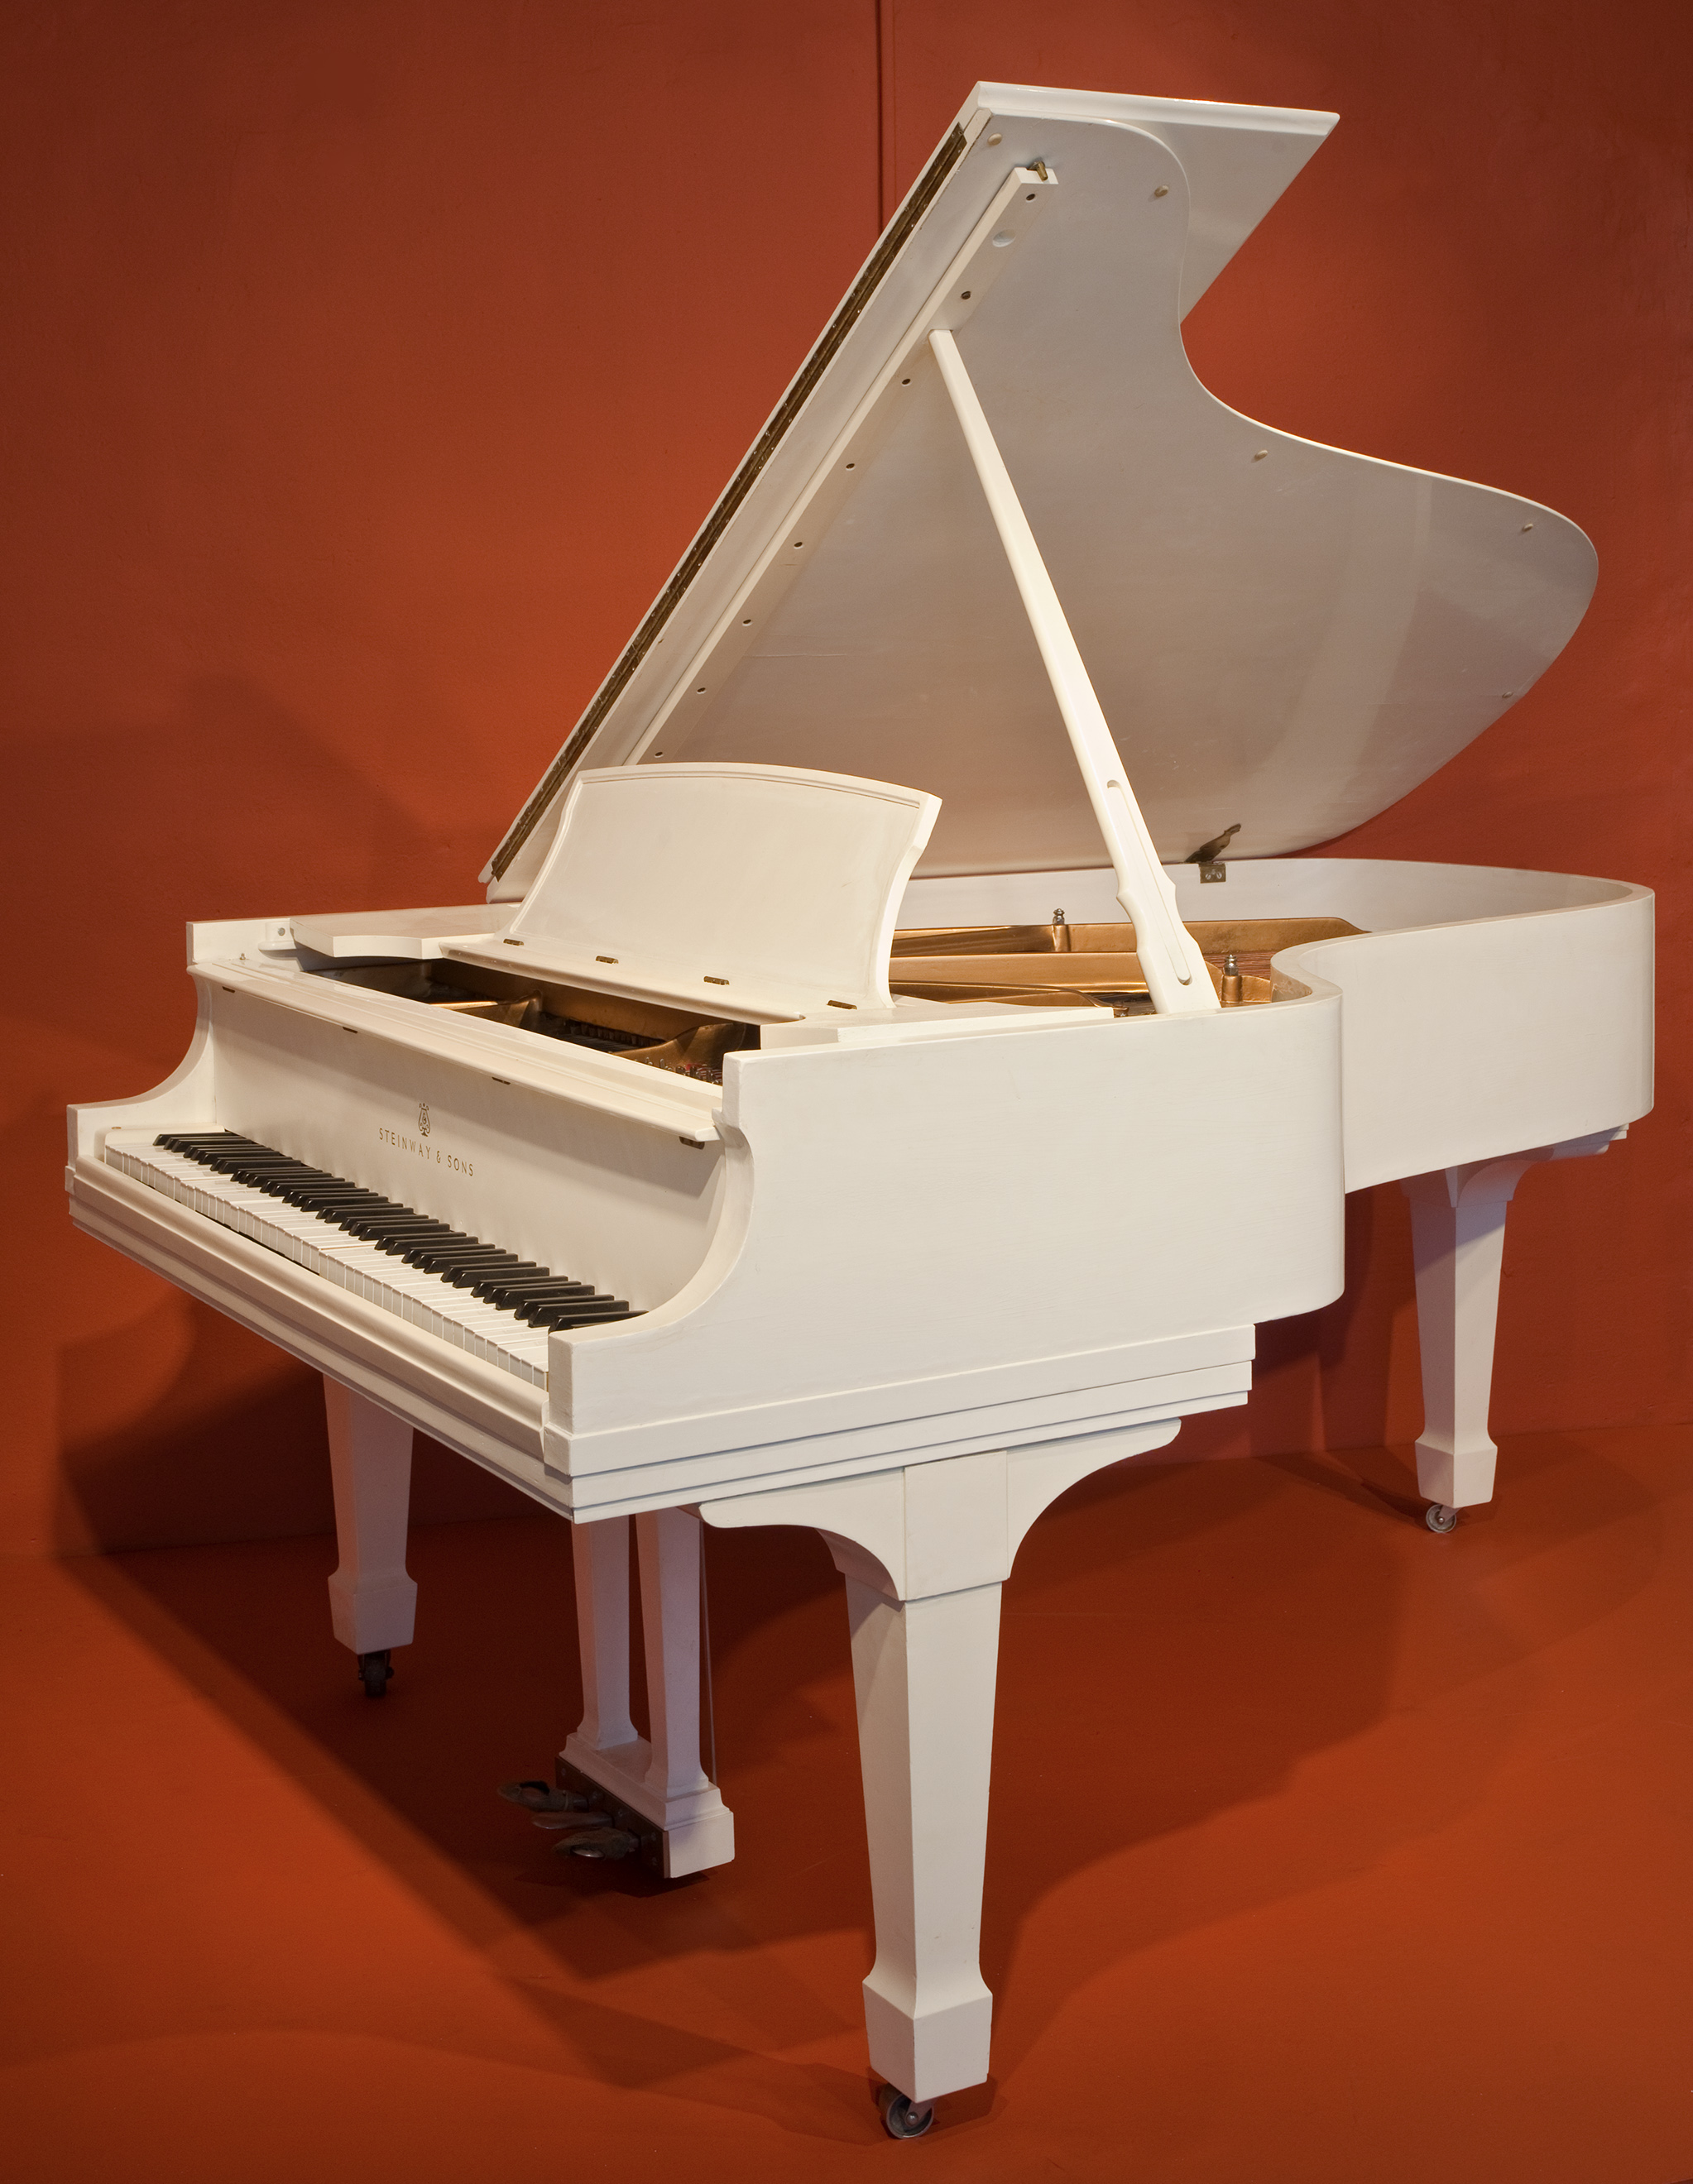 Major conservation funding provided by Mr. Allan Slaight allowed for the piano to be restored. Other conservation contributors included the Rock & Roll Hall of Fame, Sir Paul McCartney, and the Tipitina's Foundation.